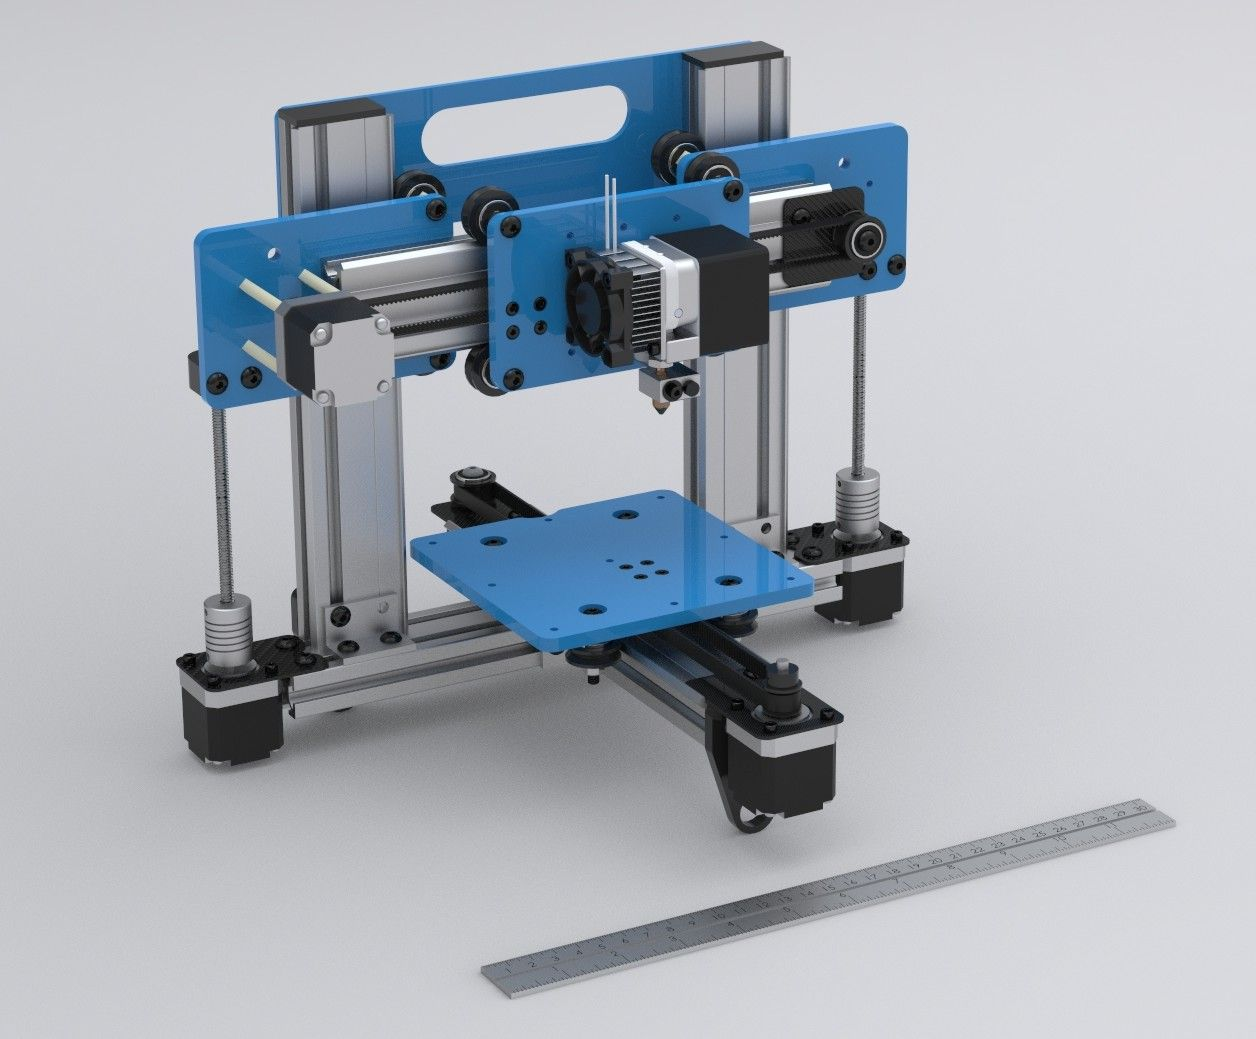 Makerslide 3d printer join the 3d printing conversation for 3d printer blueprints